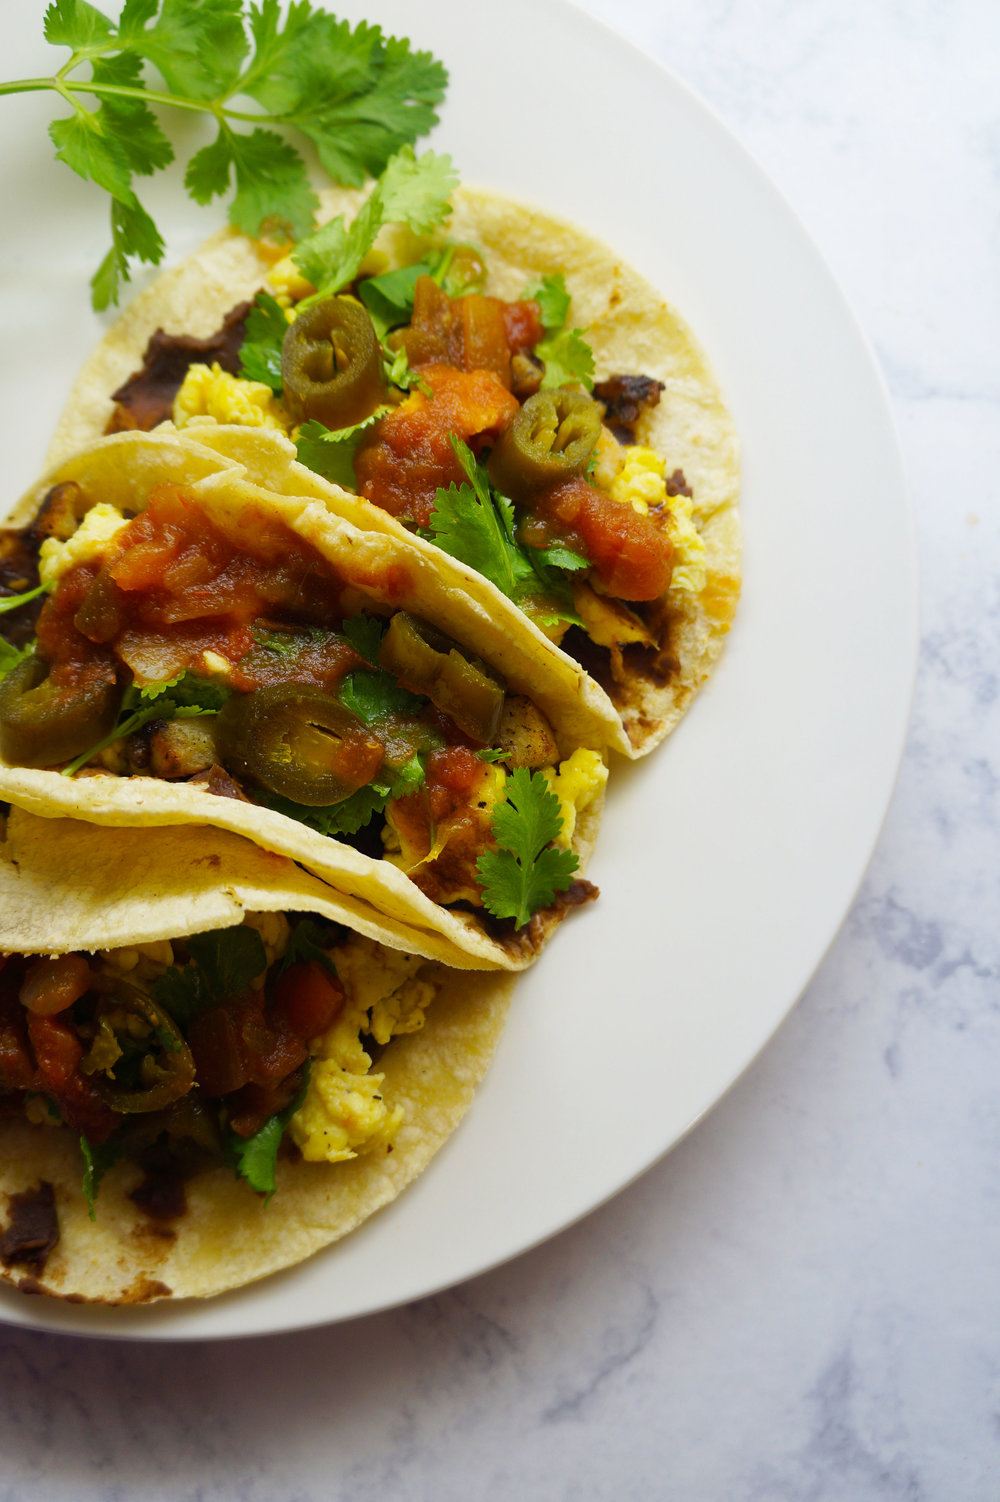 Andrea Fenise Memphis Fashion and Memphis Food Blogger shares a breakfast taco recipe